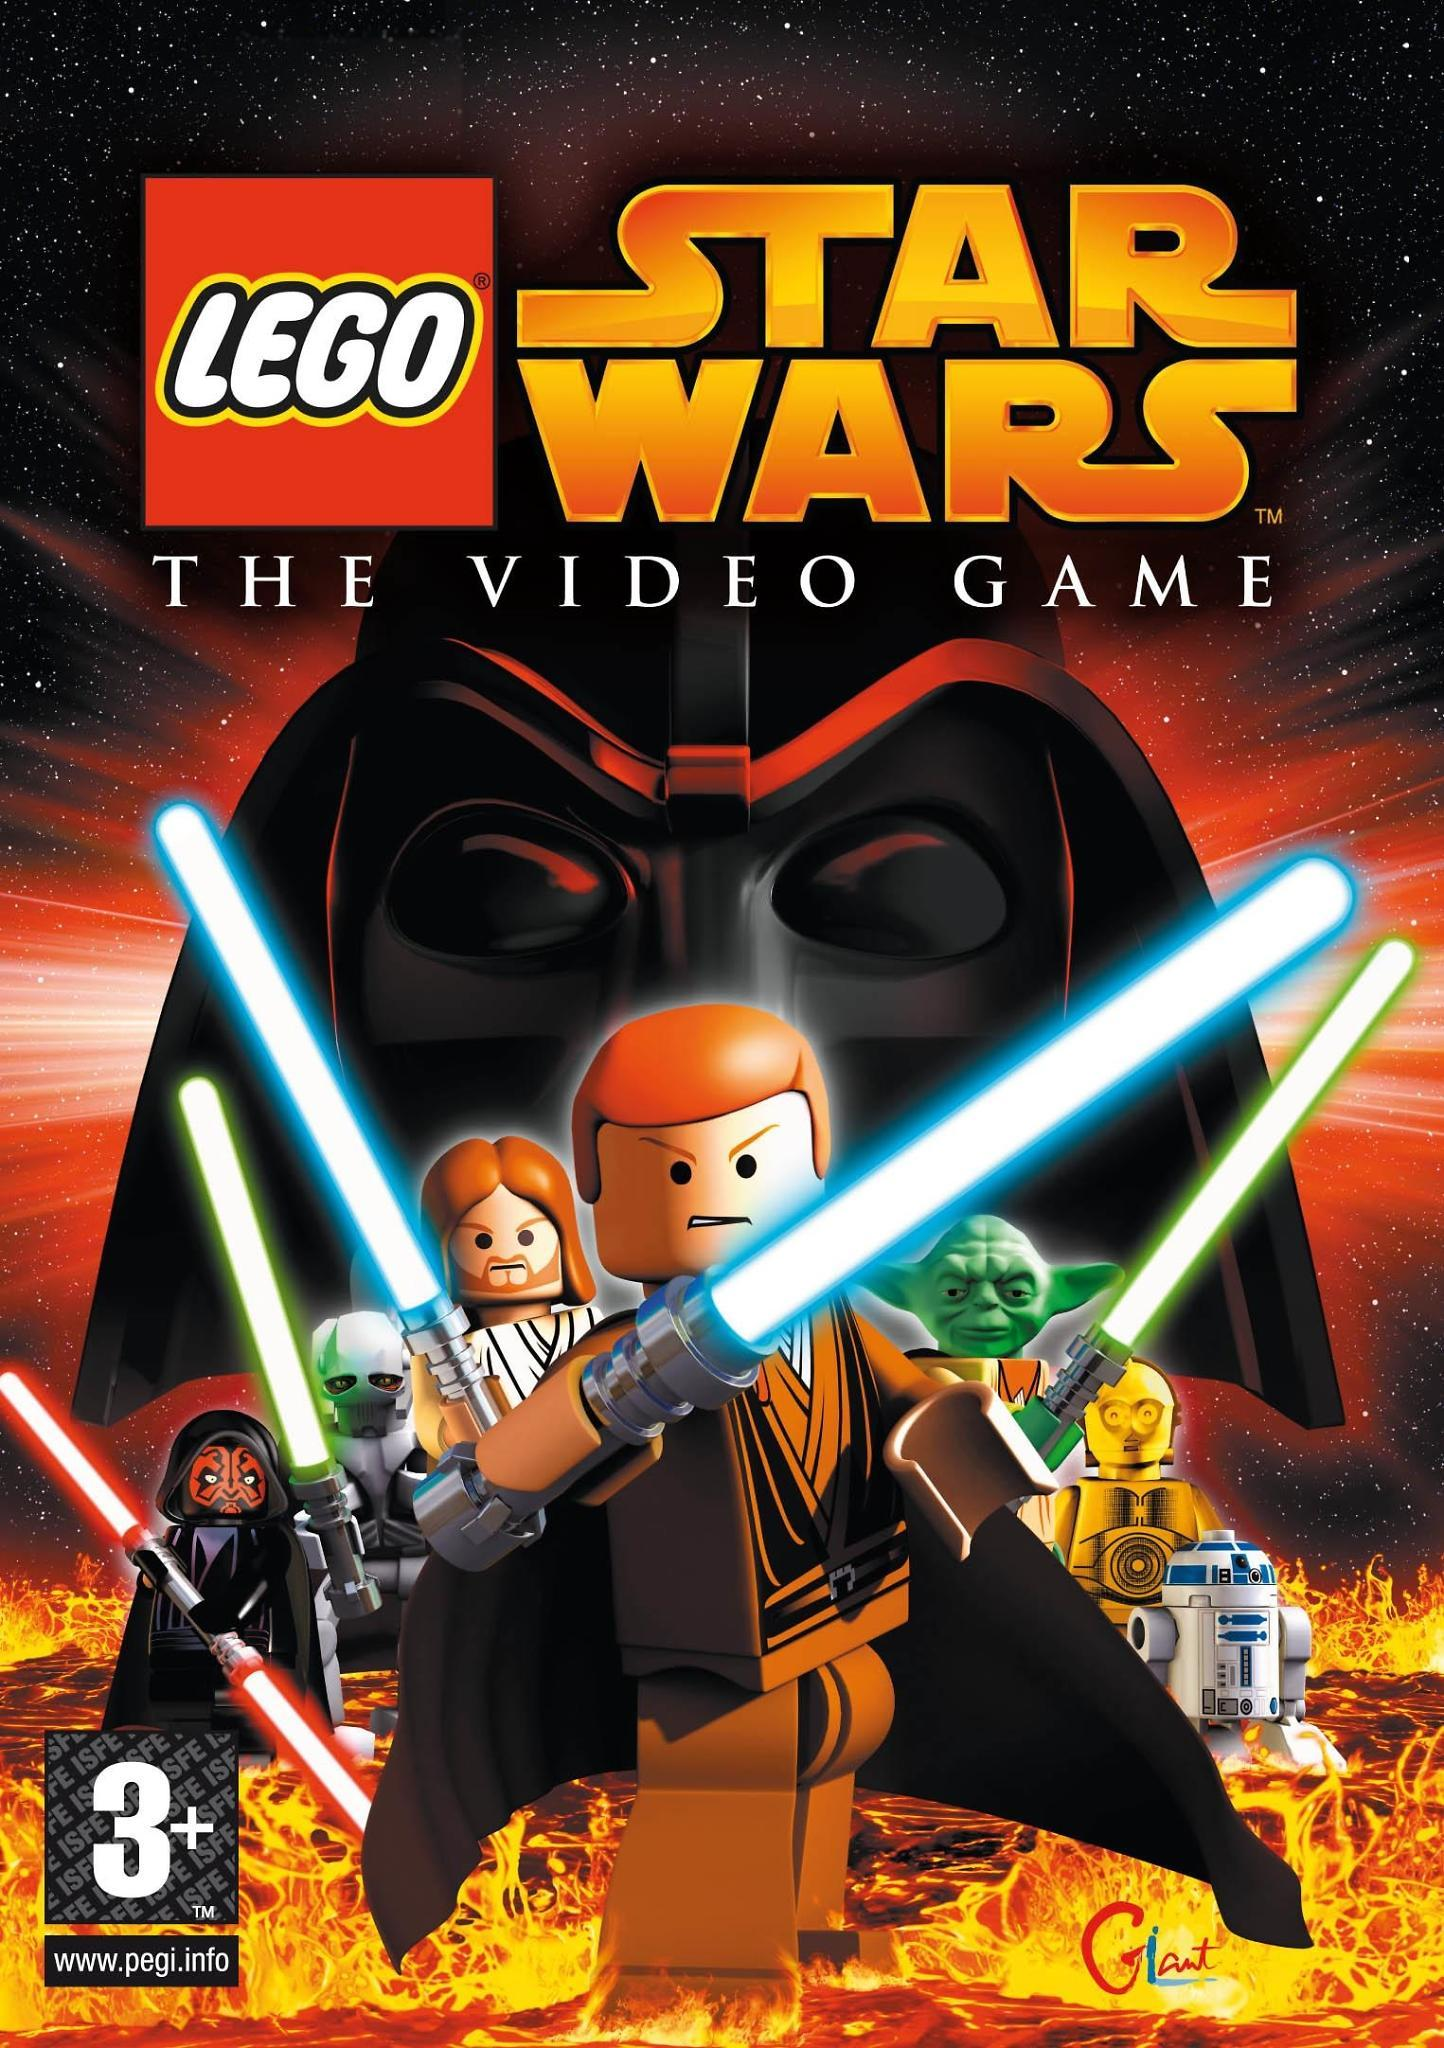 Which of these characters is not usable, but mentioned in LEGO Star Wars the Video Game?